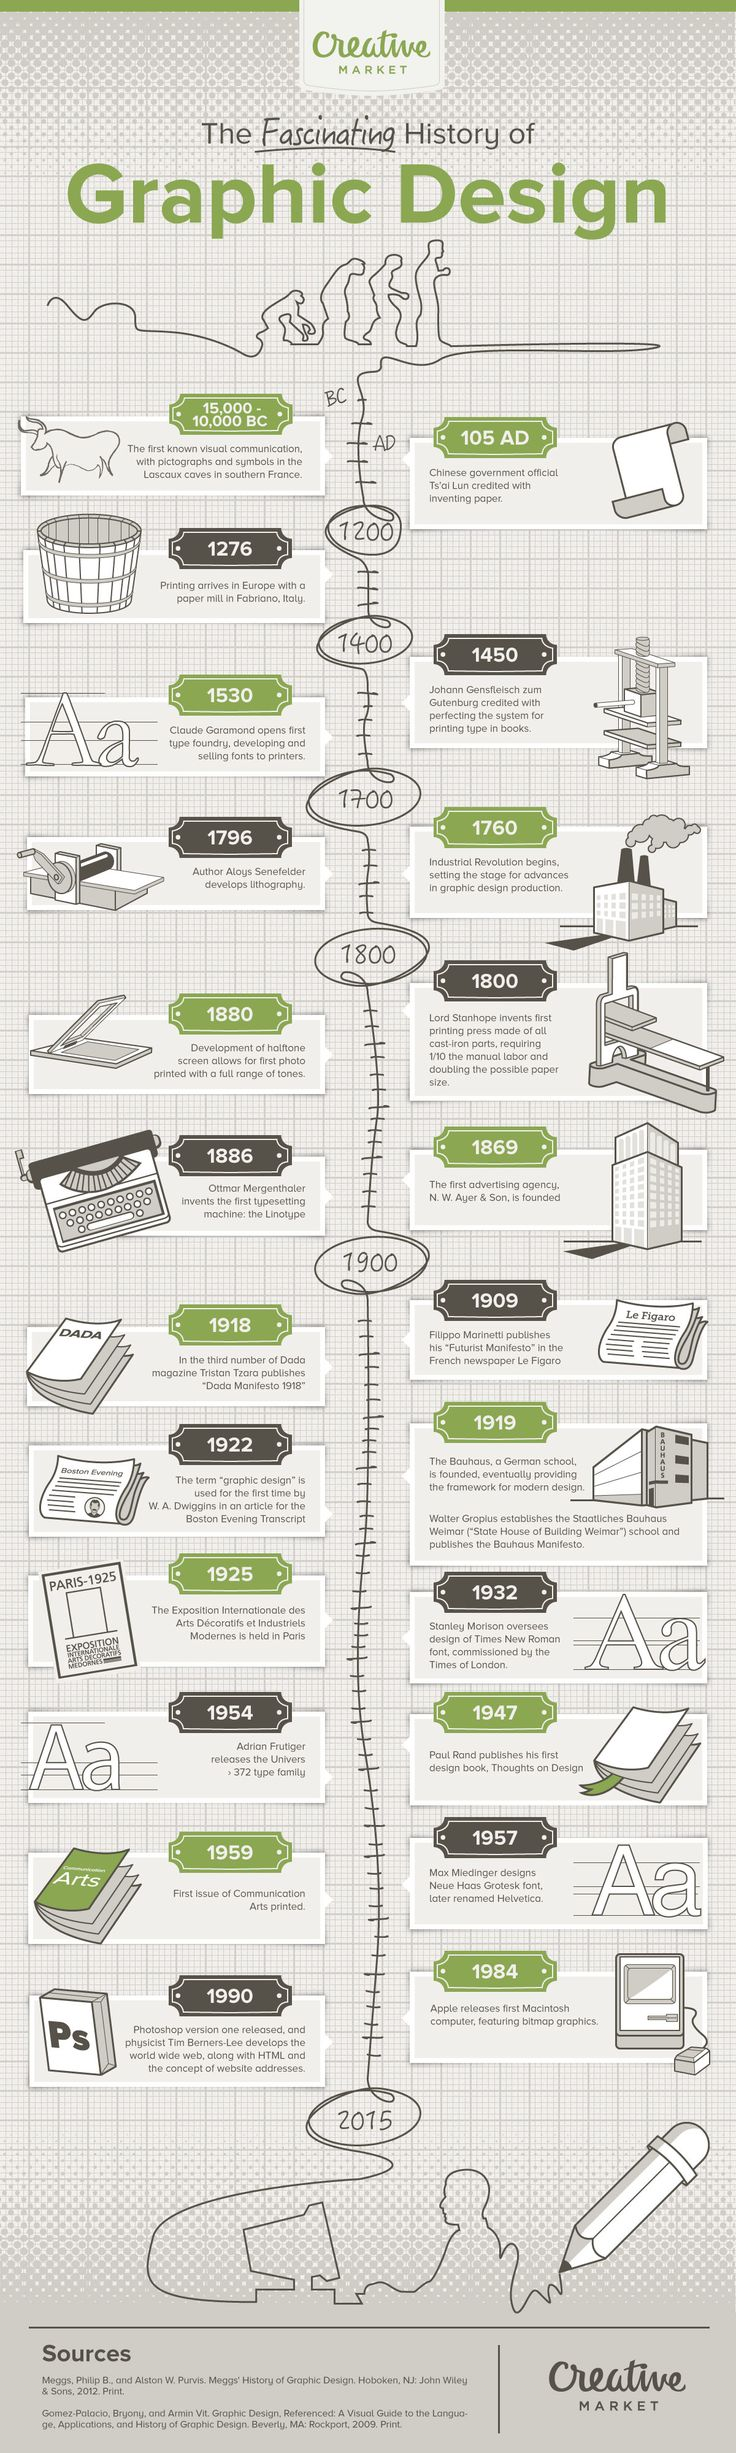 The History of Graphic Design #Infographic #History #GraphicDesign